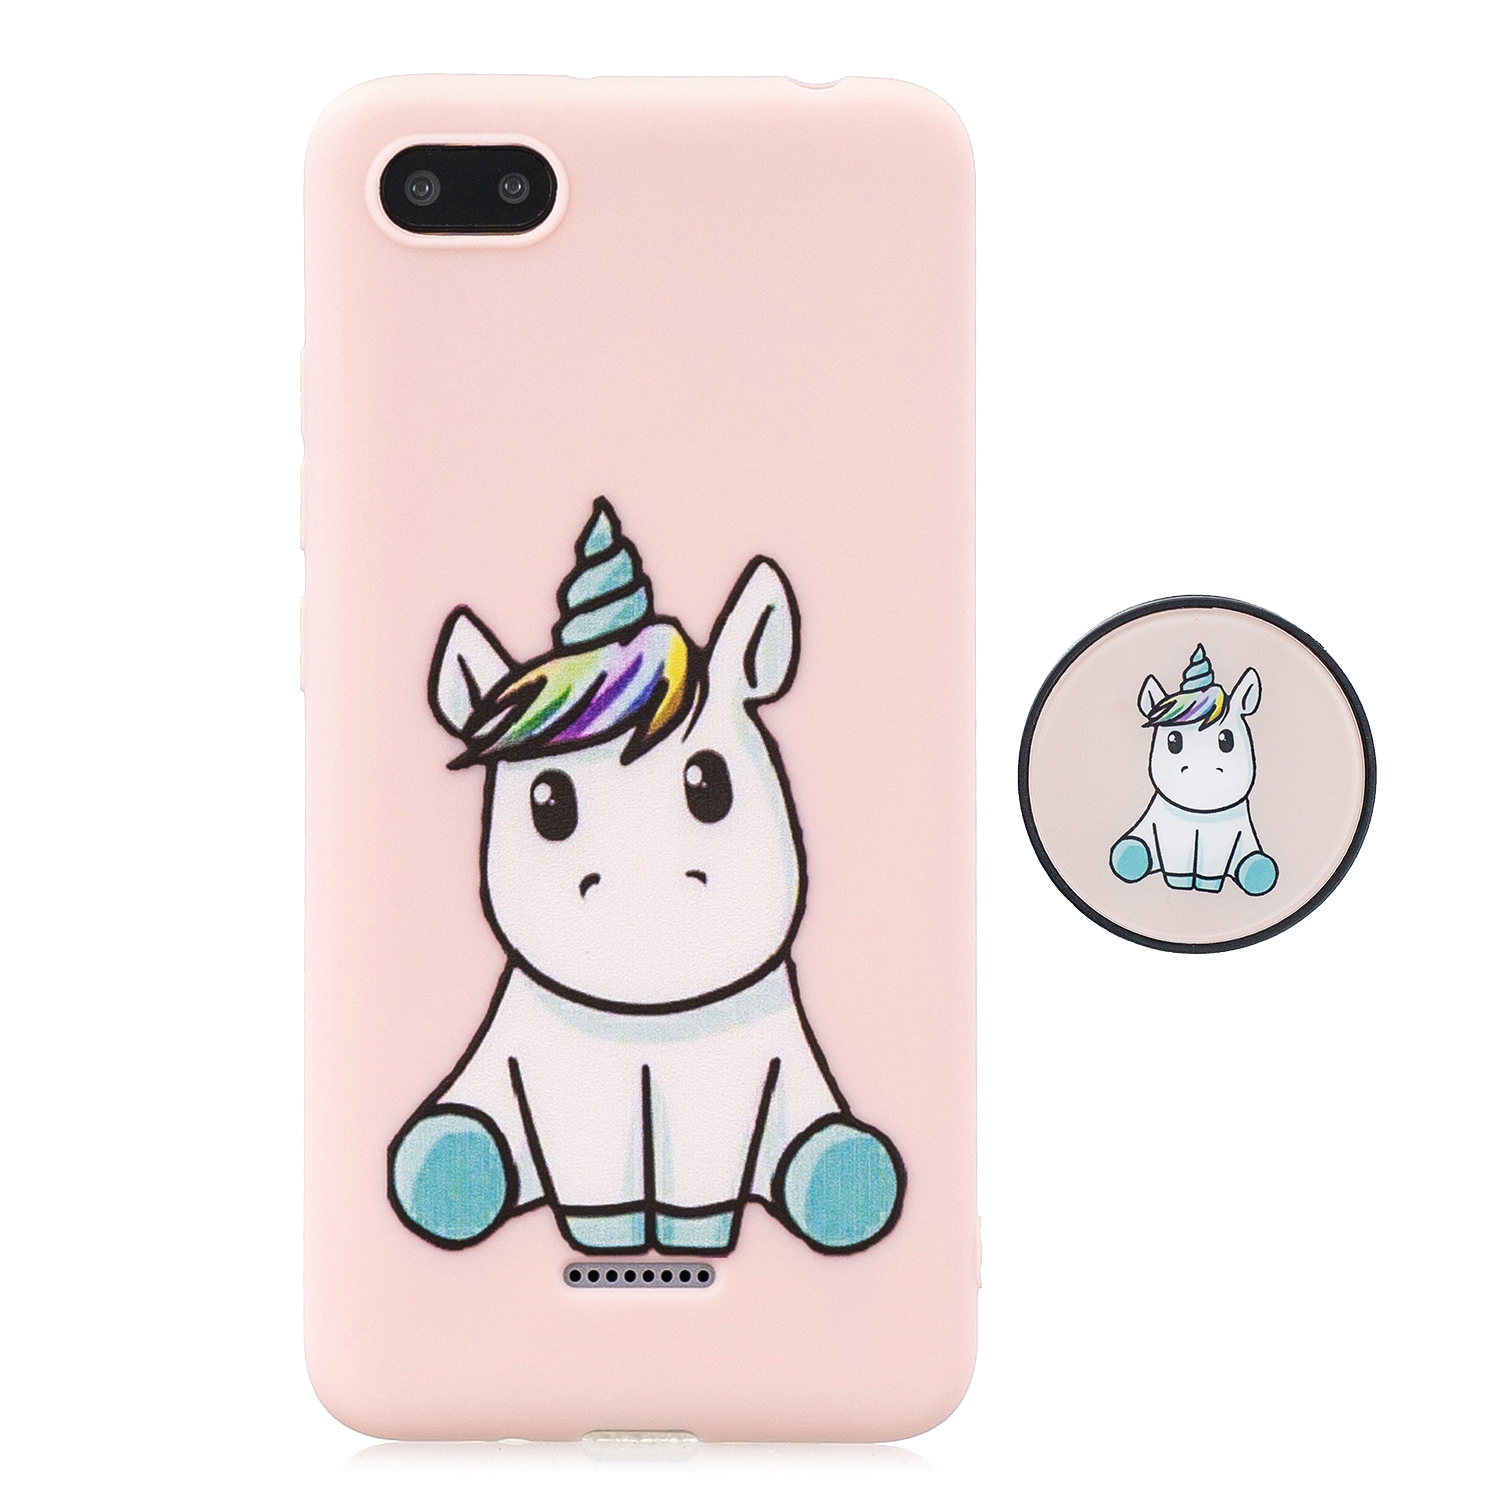 For Redmi 6A Phone Cases TPU Full Cover Cute Cartoon Painted Case Girls Mobile Phone Cover with Matched Pattern Adjustable Bracket 6